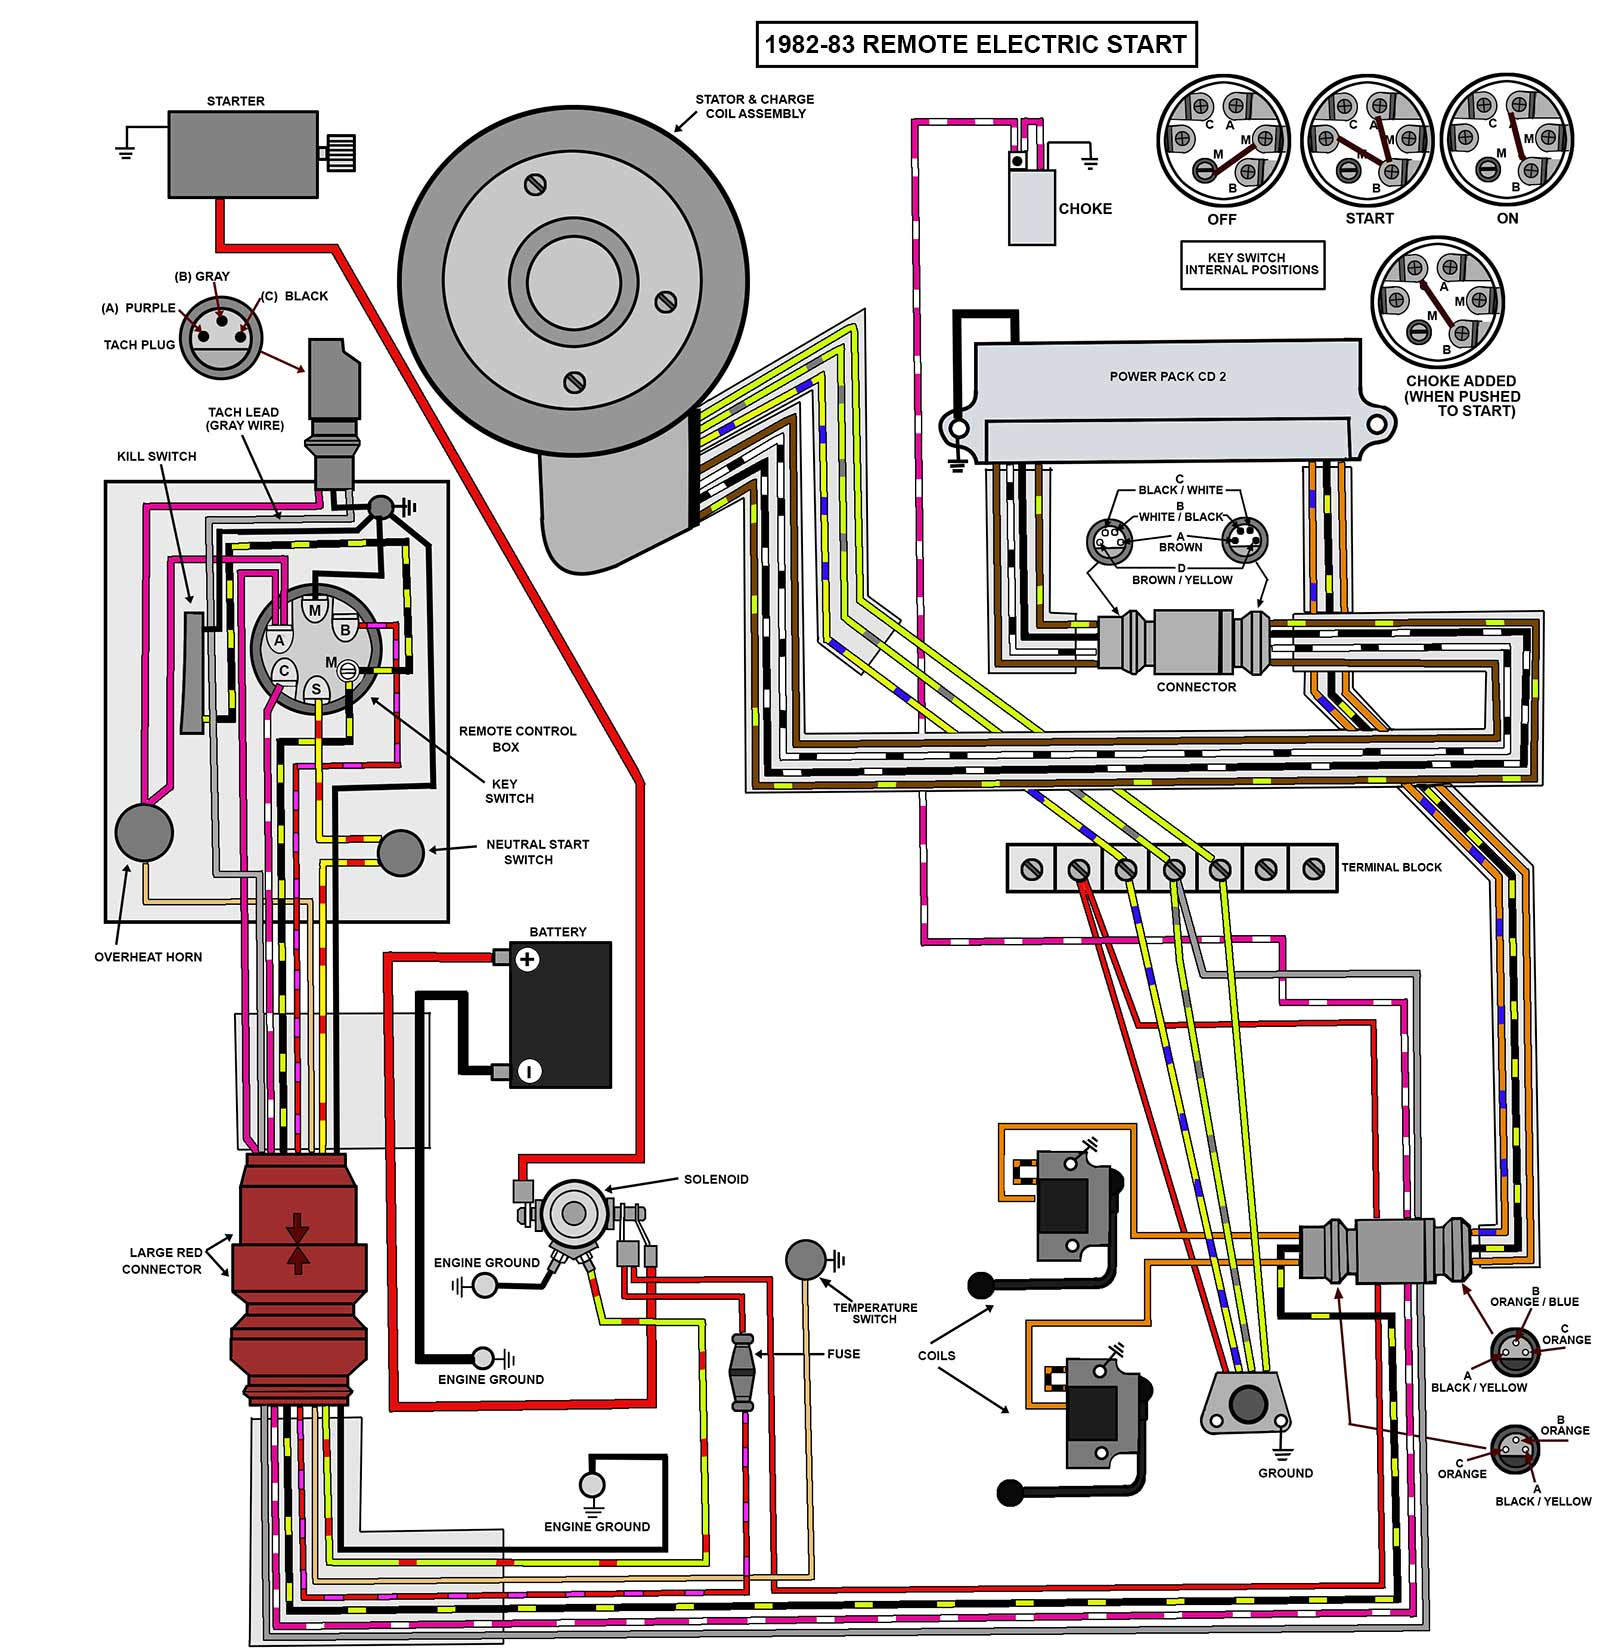 25_35_82 83_elec remote mastertech marine evinrude johnson outboard wiring diagrams mercury 9.9 4 stroke wiring diagram at panicattacktreatment.co